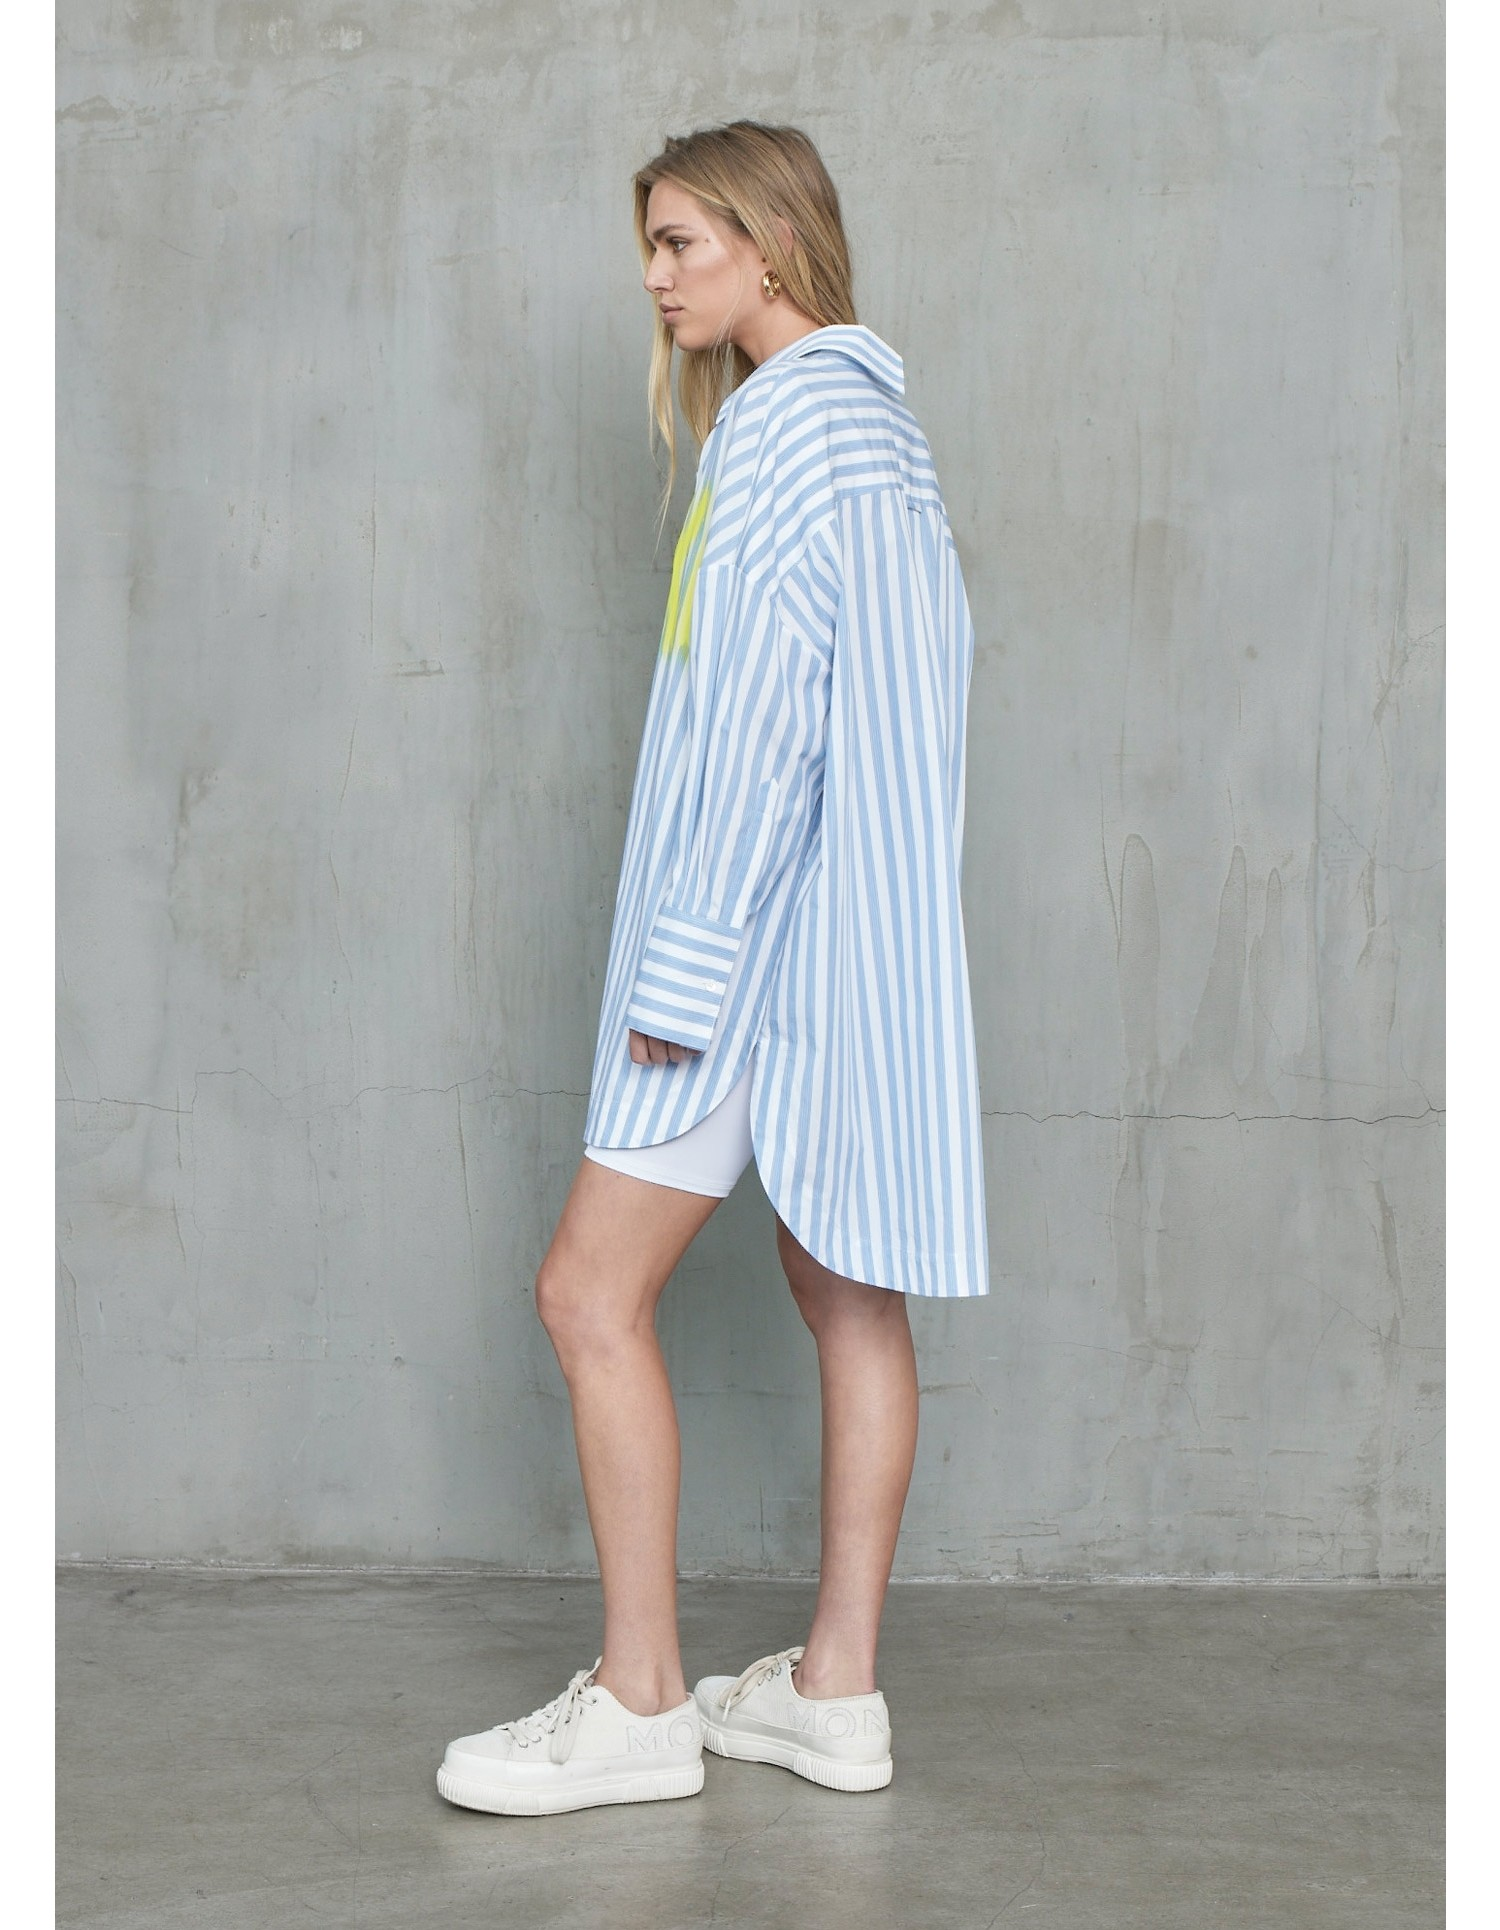 MONSE XOXO Oversized Striped Shirt Dress in Sky and White on Model No Background Full Front View